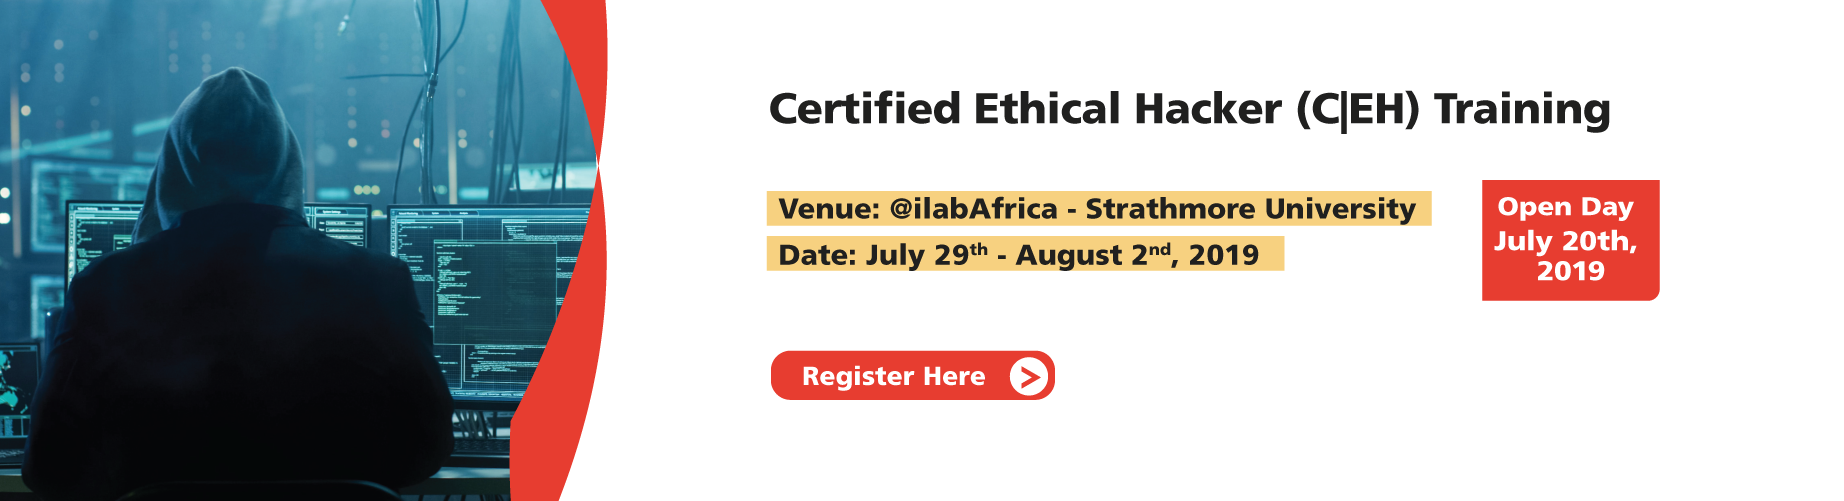 Certified-Ethical-Hacker-Banner